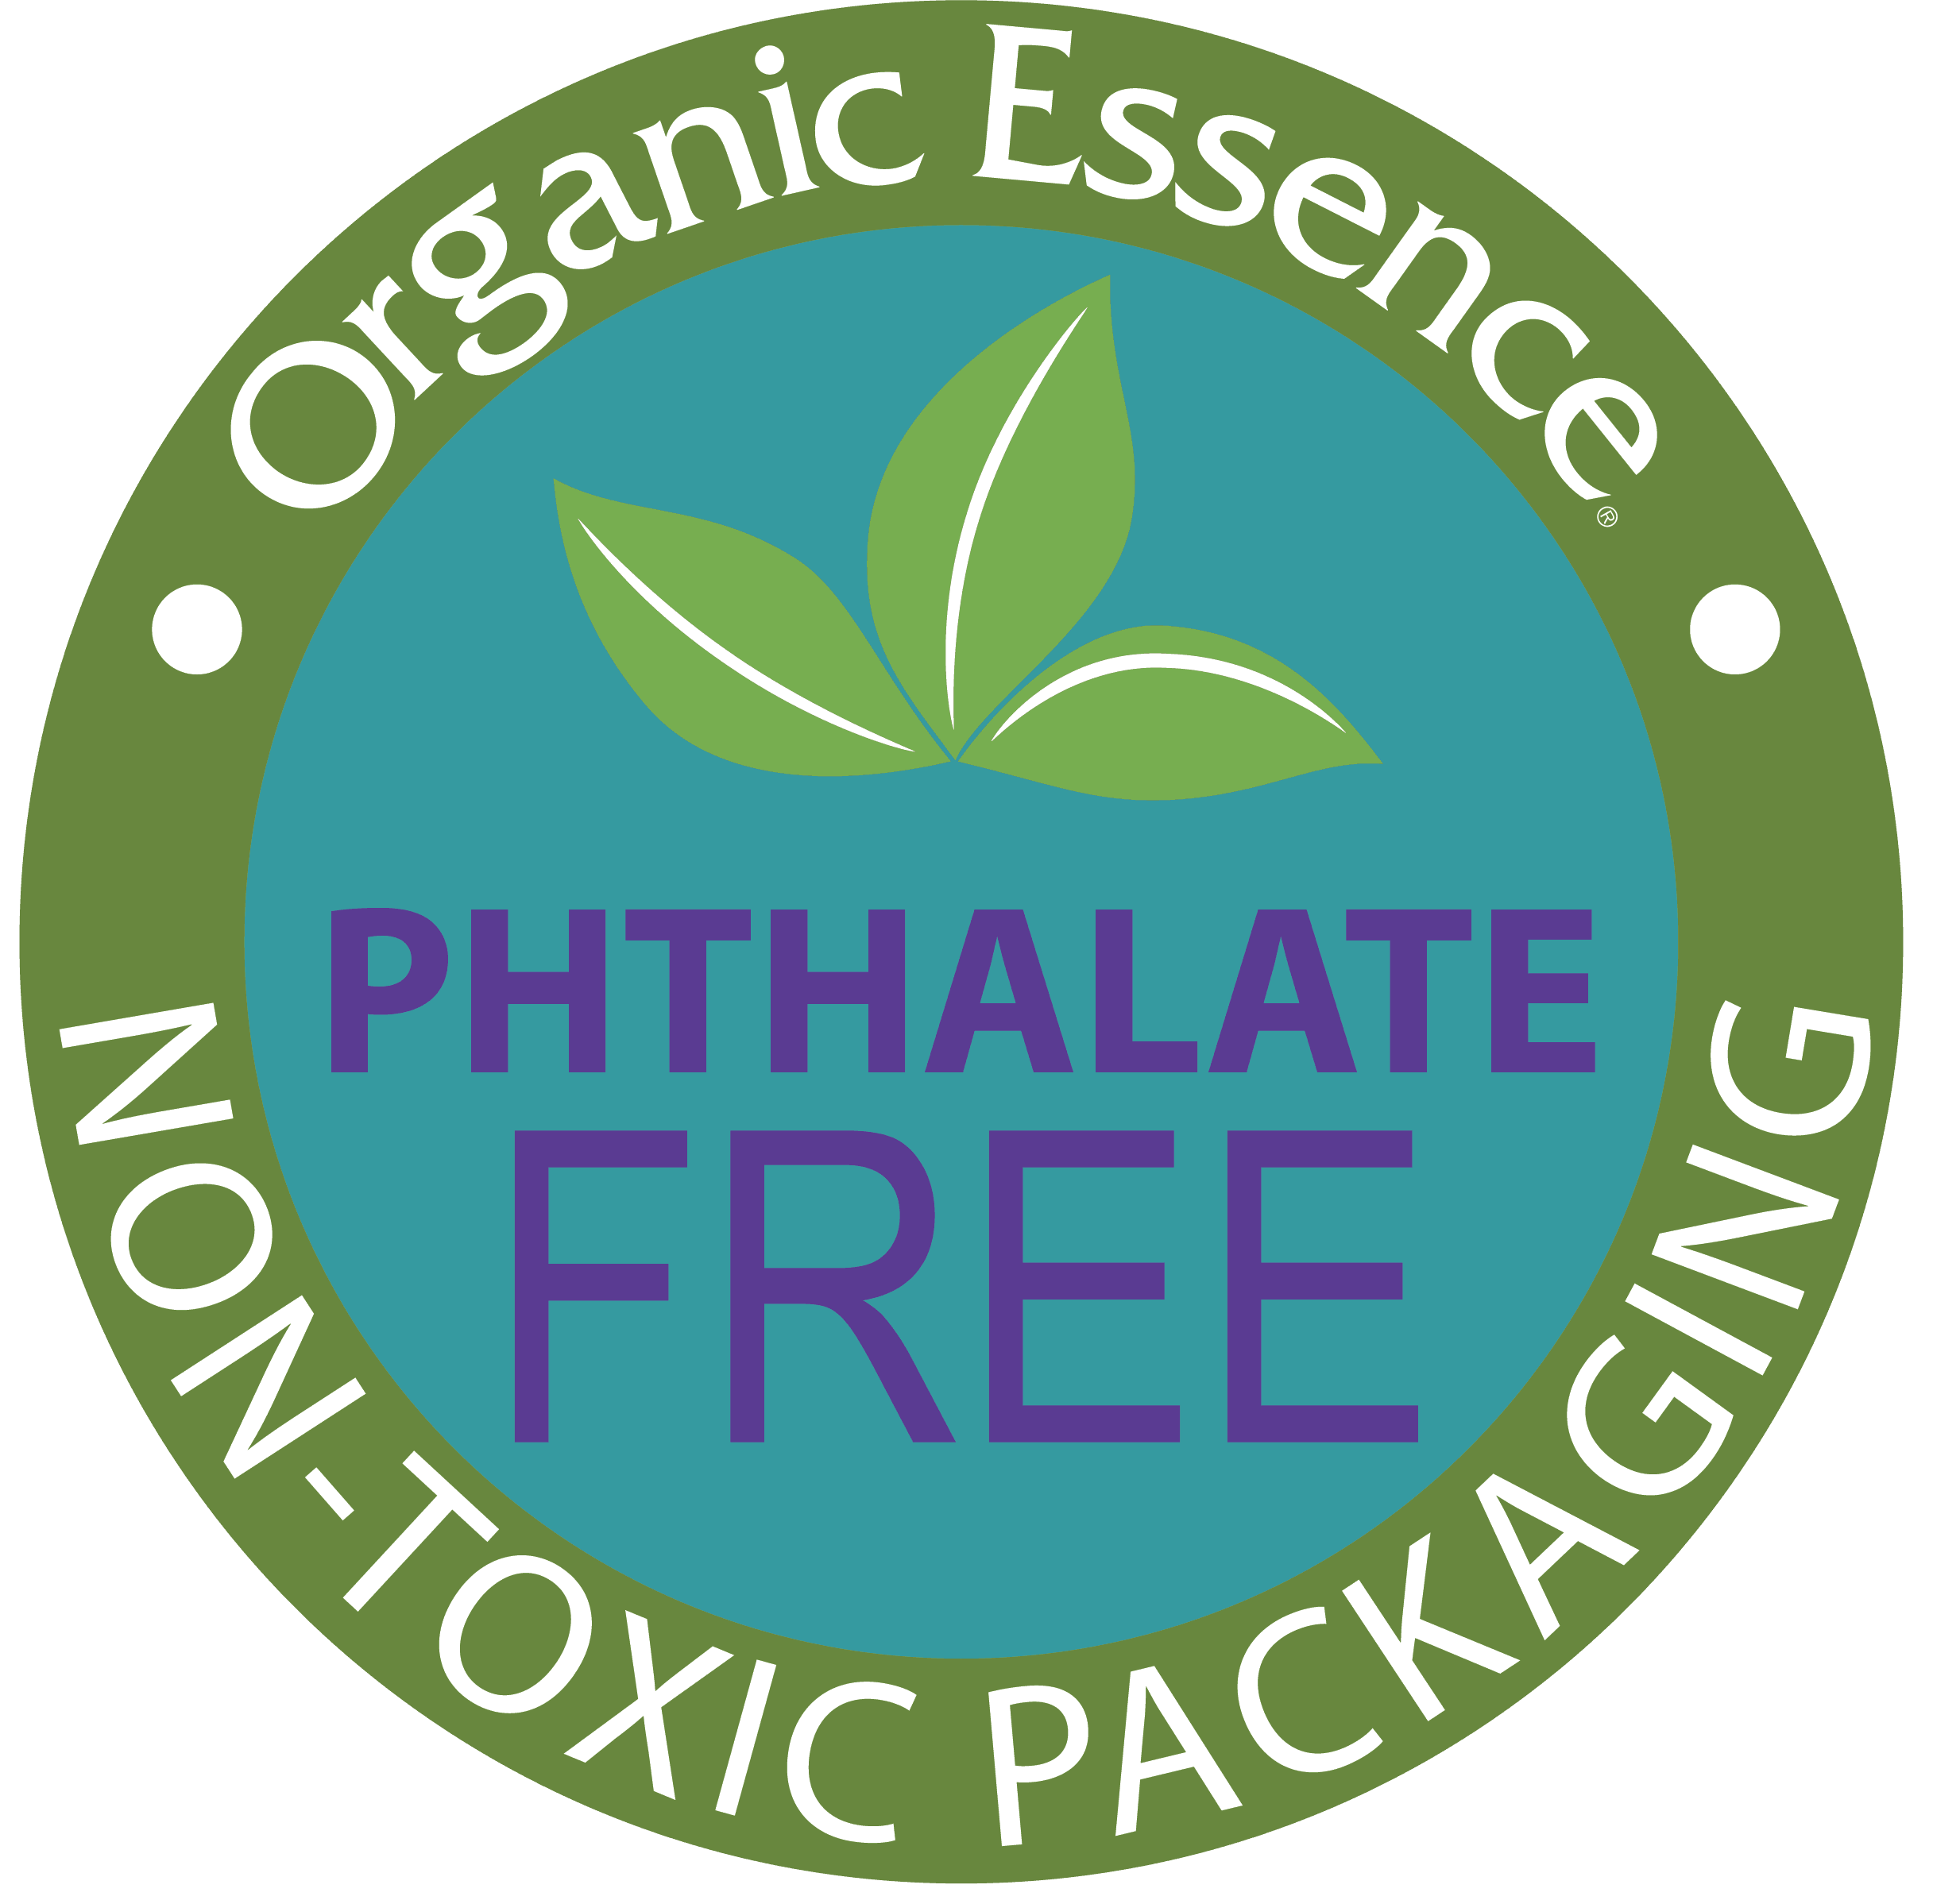 Phthalate Free Non Toxic Packaging